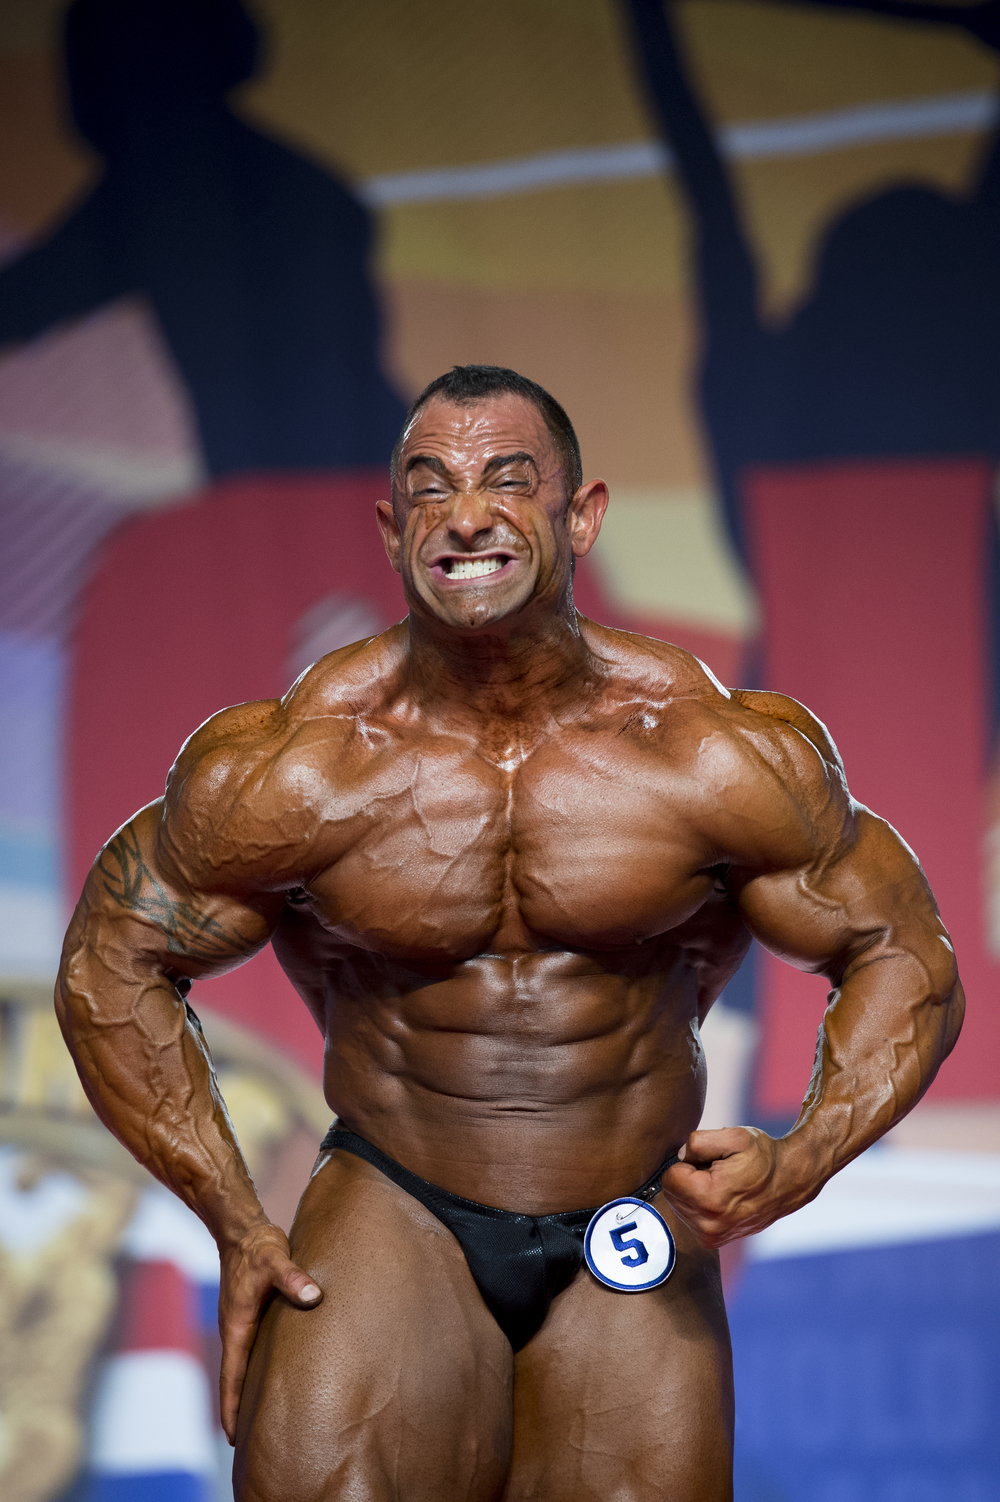 Guy Cisternino strikes an intense pose during the pose-down for the Arnold Classic 212 pre-judging at the Arnold Sports Festival on Friday, March 4, 2016.